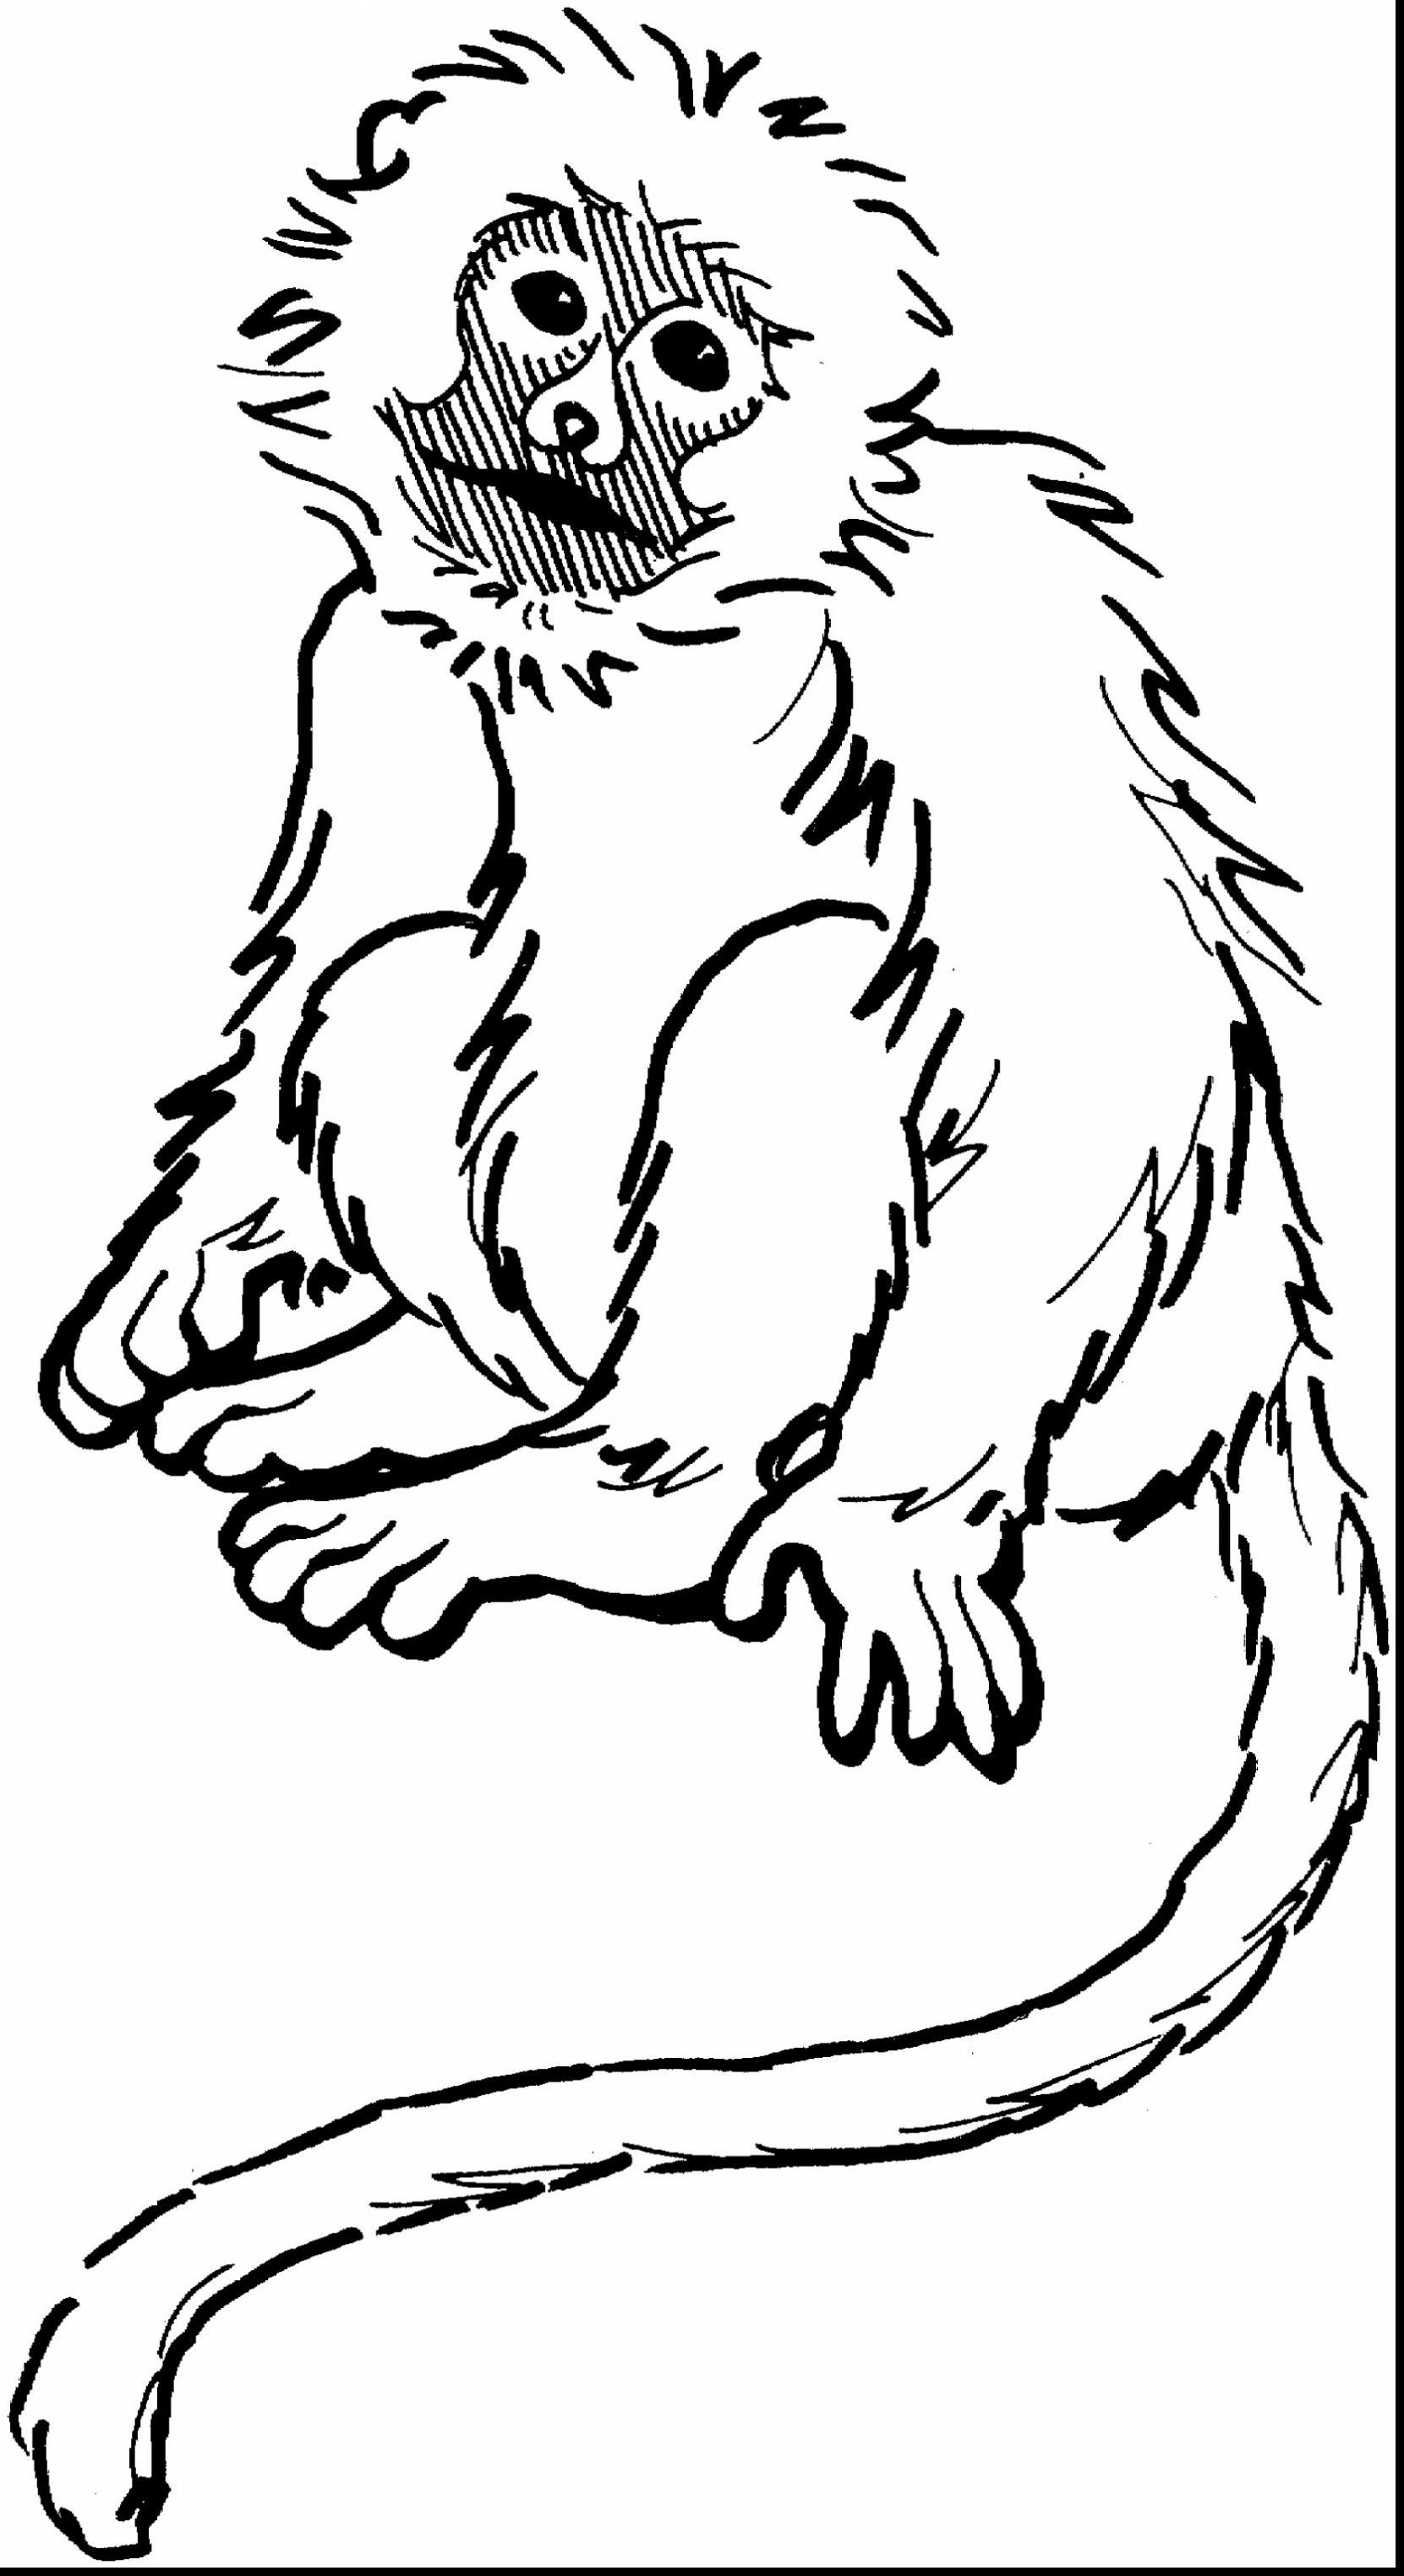 1661x3048 Spider Monkey Coloring Page Coloring Page For Kids